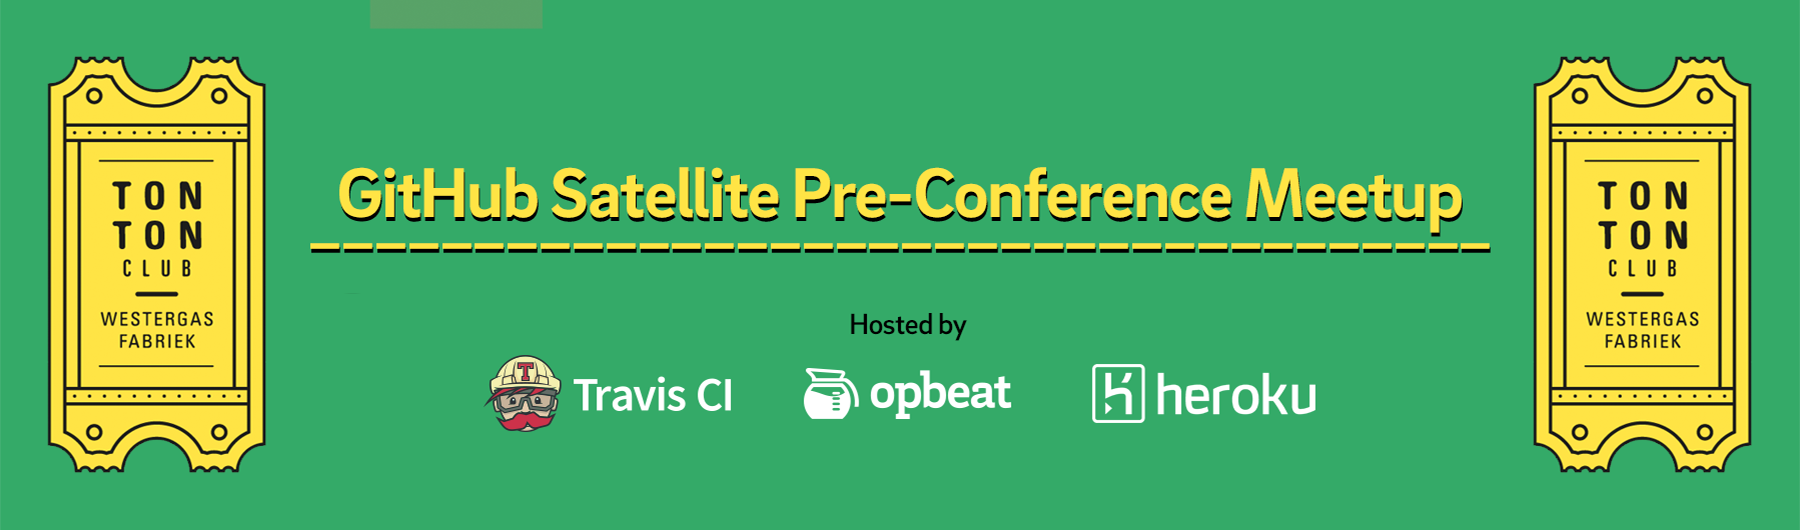 GitHub Satellite Pre-Conference Meetup Hosted by Travis CI, Opbeat & Heroku